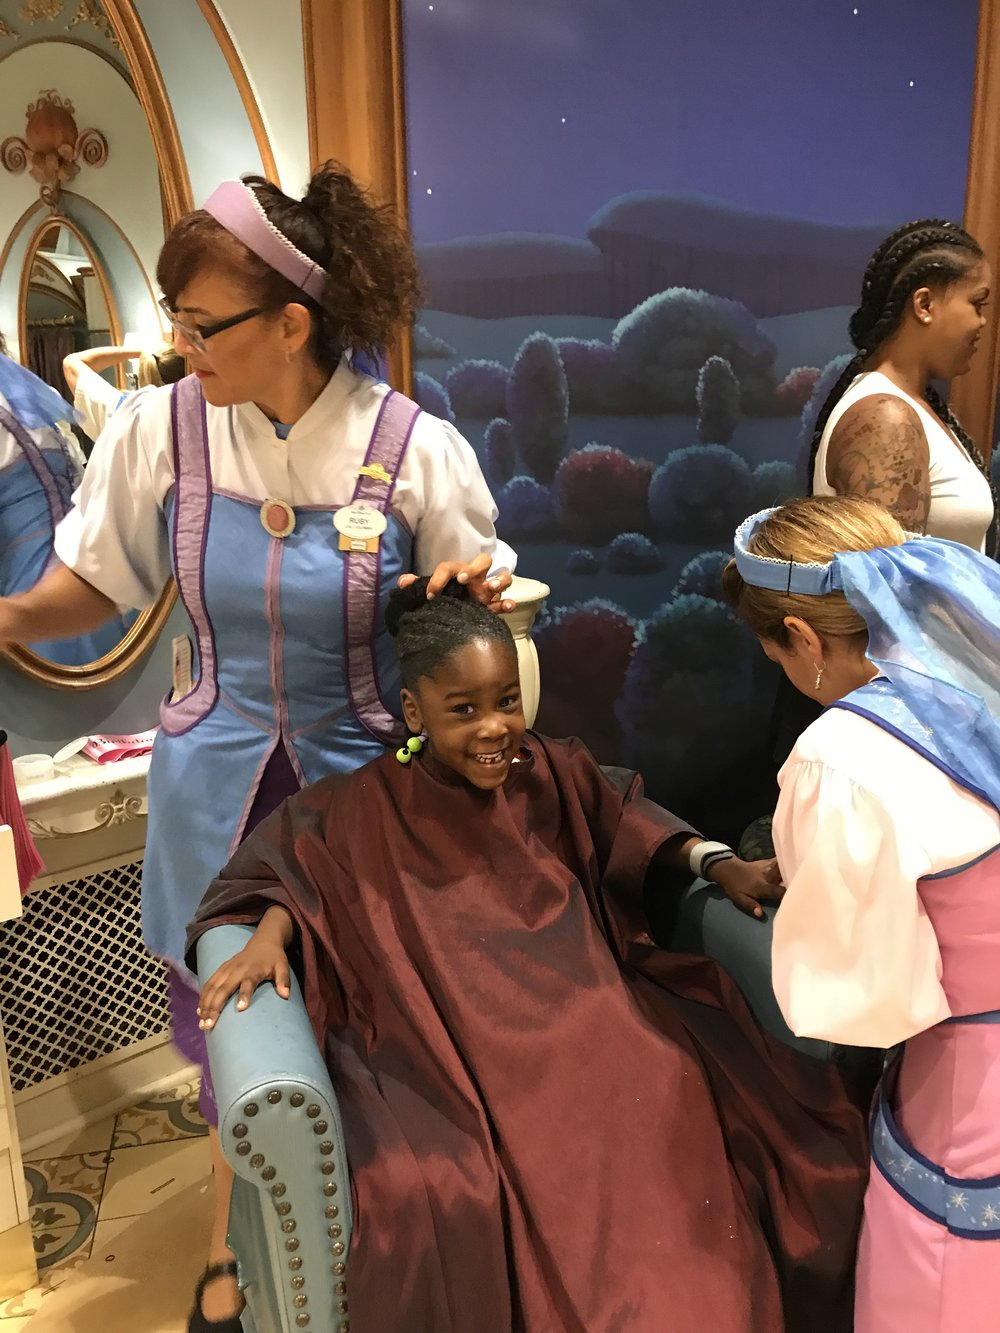 disney-bibbidi-bobbidi-boutique-for-black-girls-hair-styles.jpg